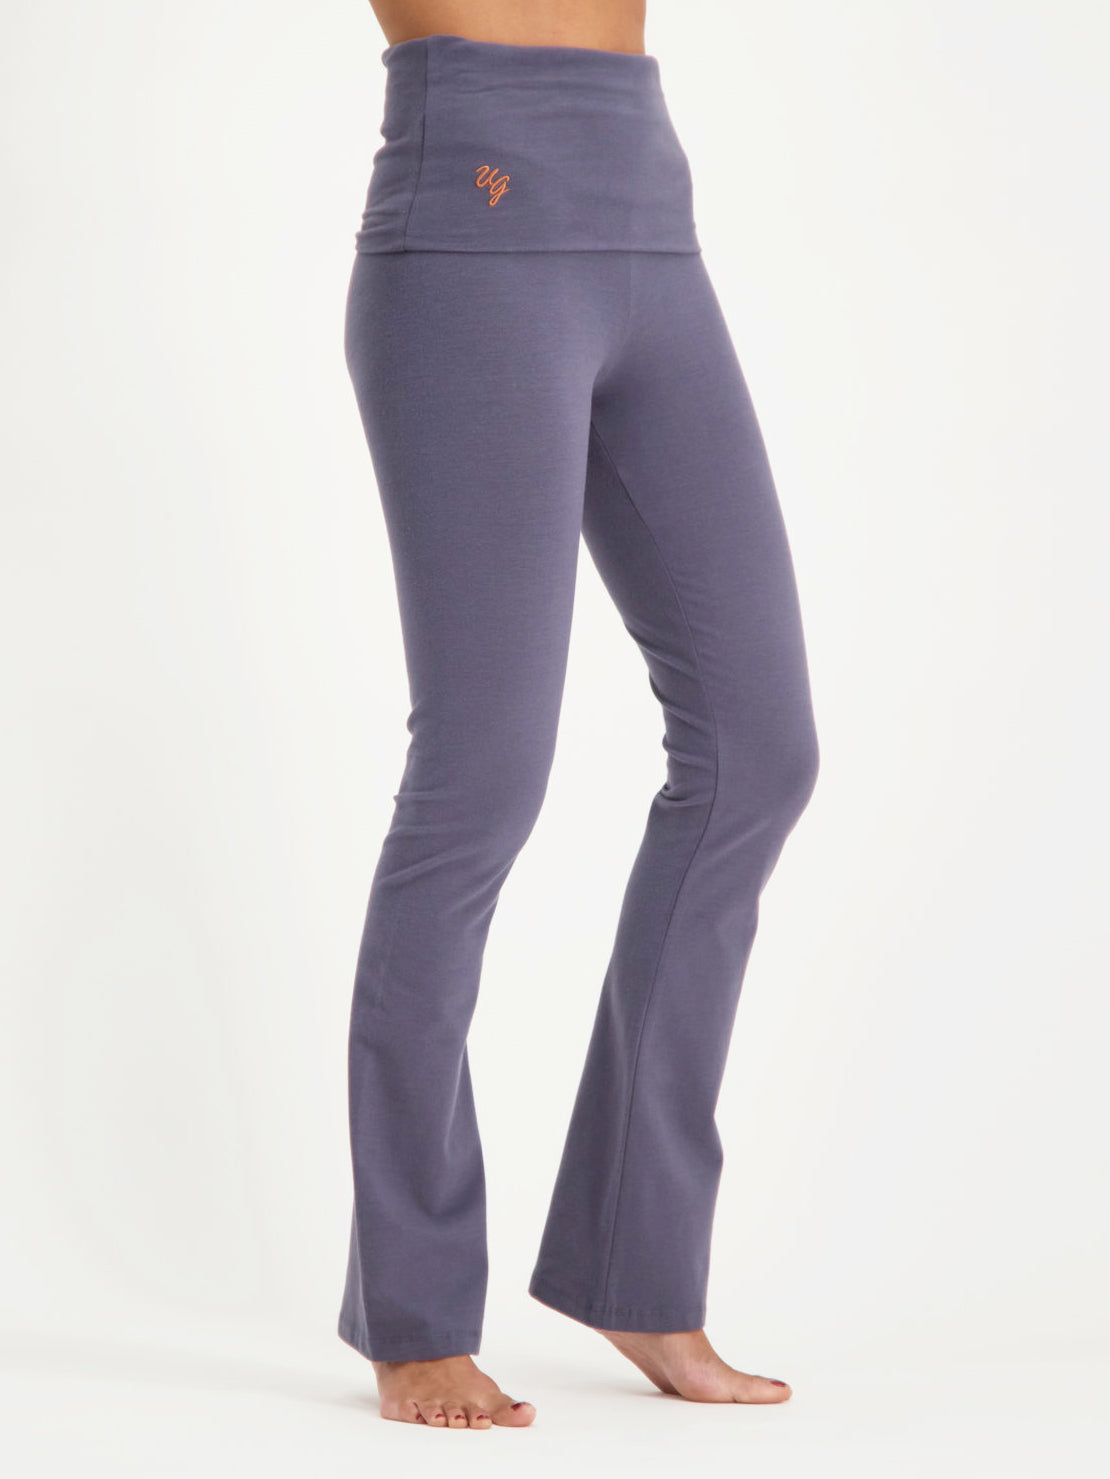 Urban Goddess Pranafied Pants - Rock